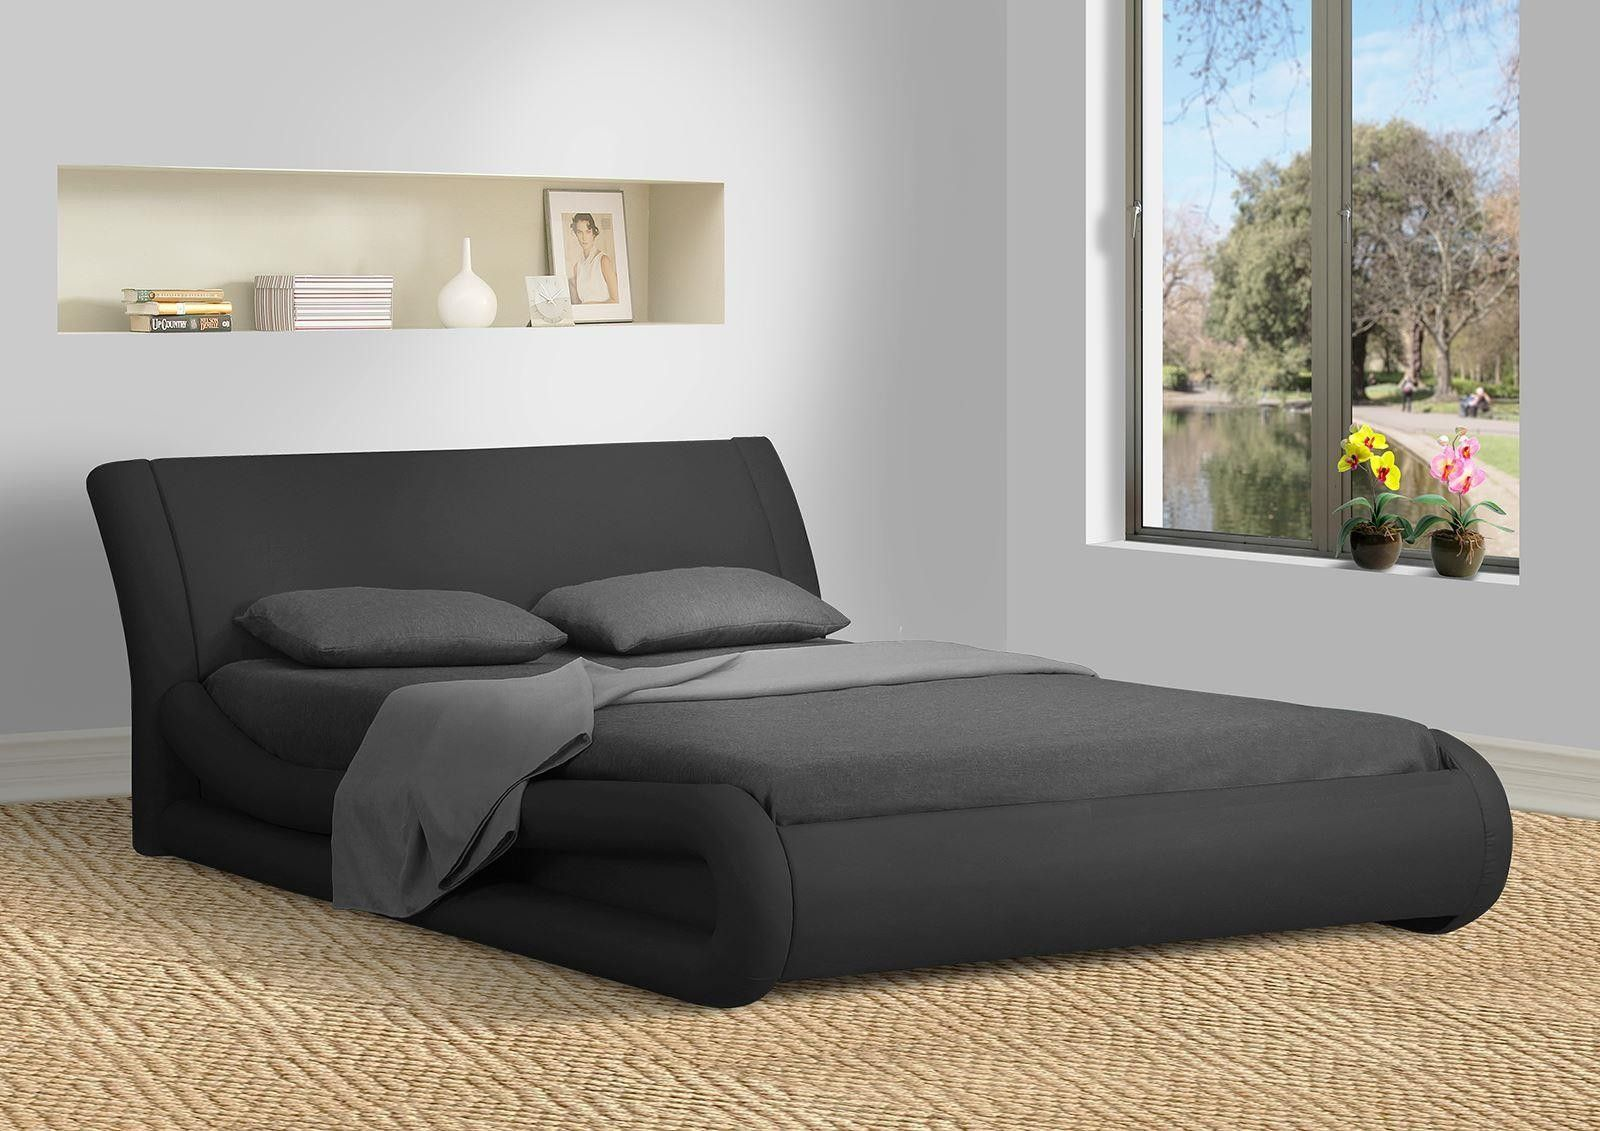 Florance beds are some of the best beds that we have here at modern furniture direct perfect with a memory foam mattress